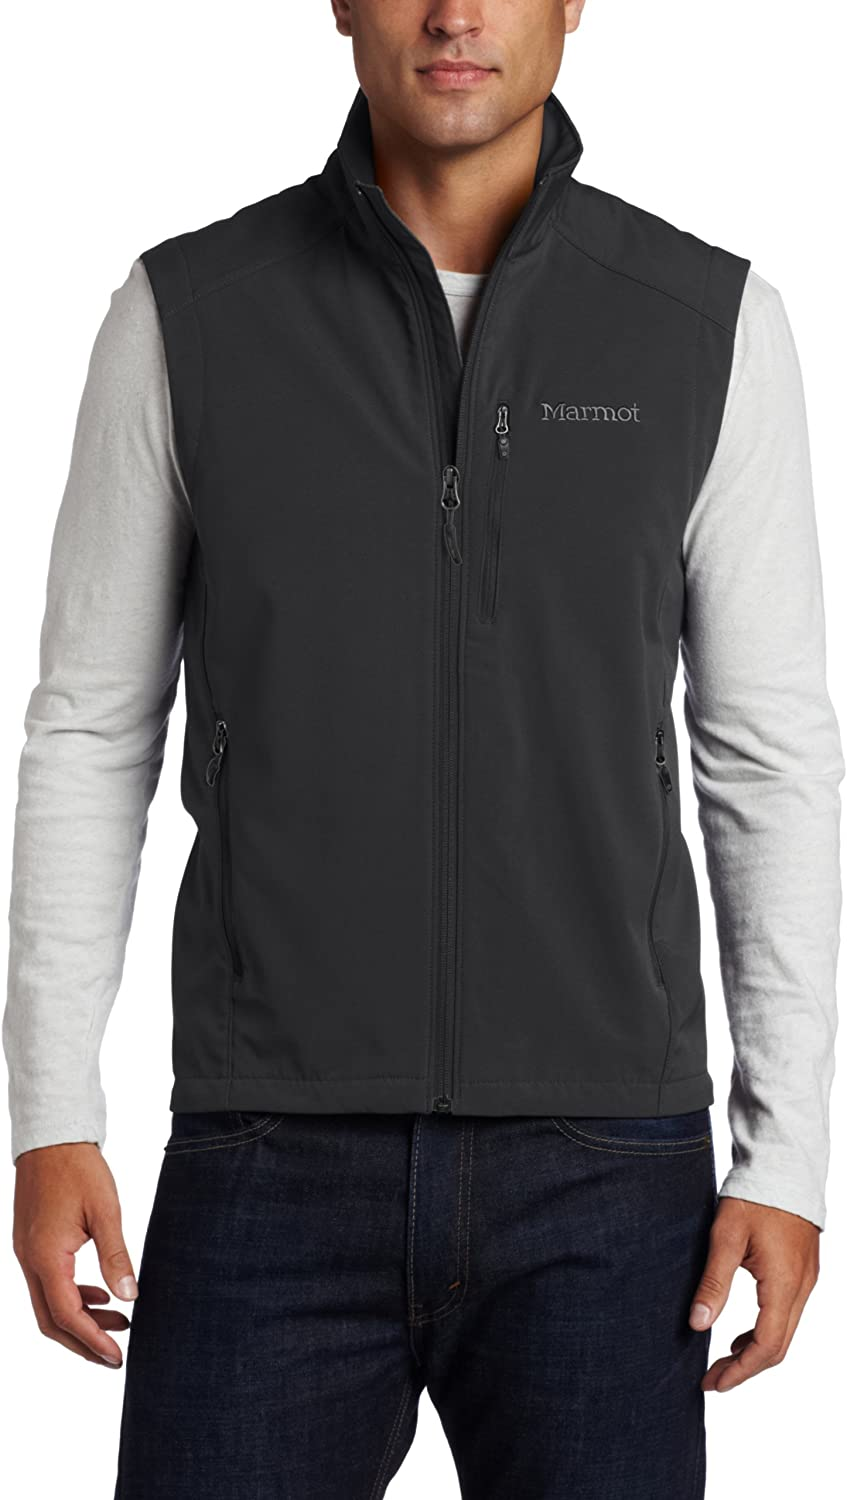 Marmot Men's Approach Vest, Black, Large: Clothing